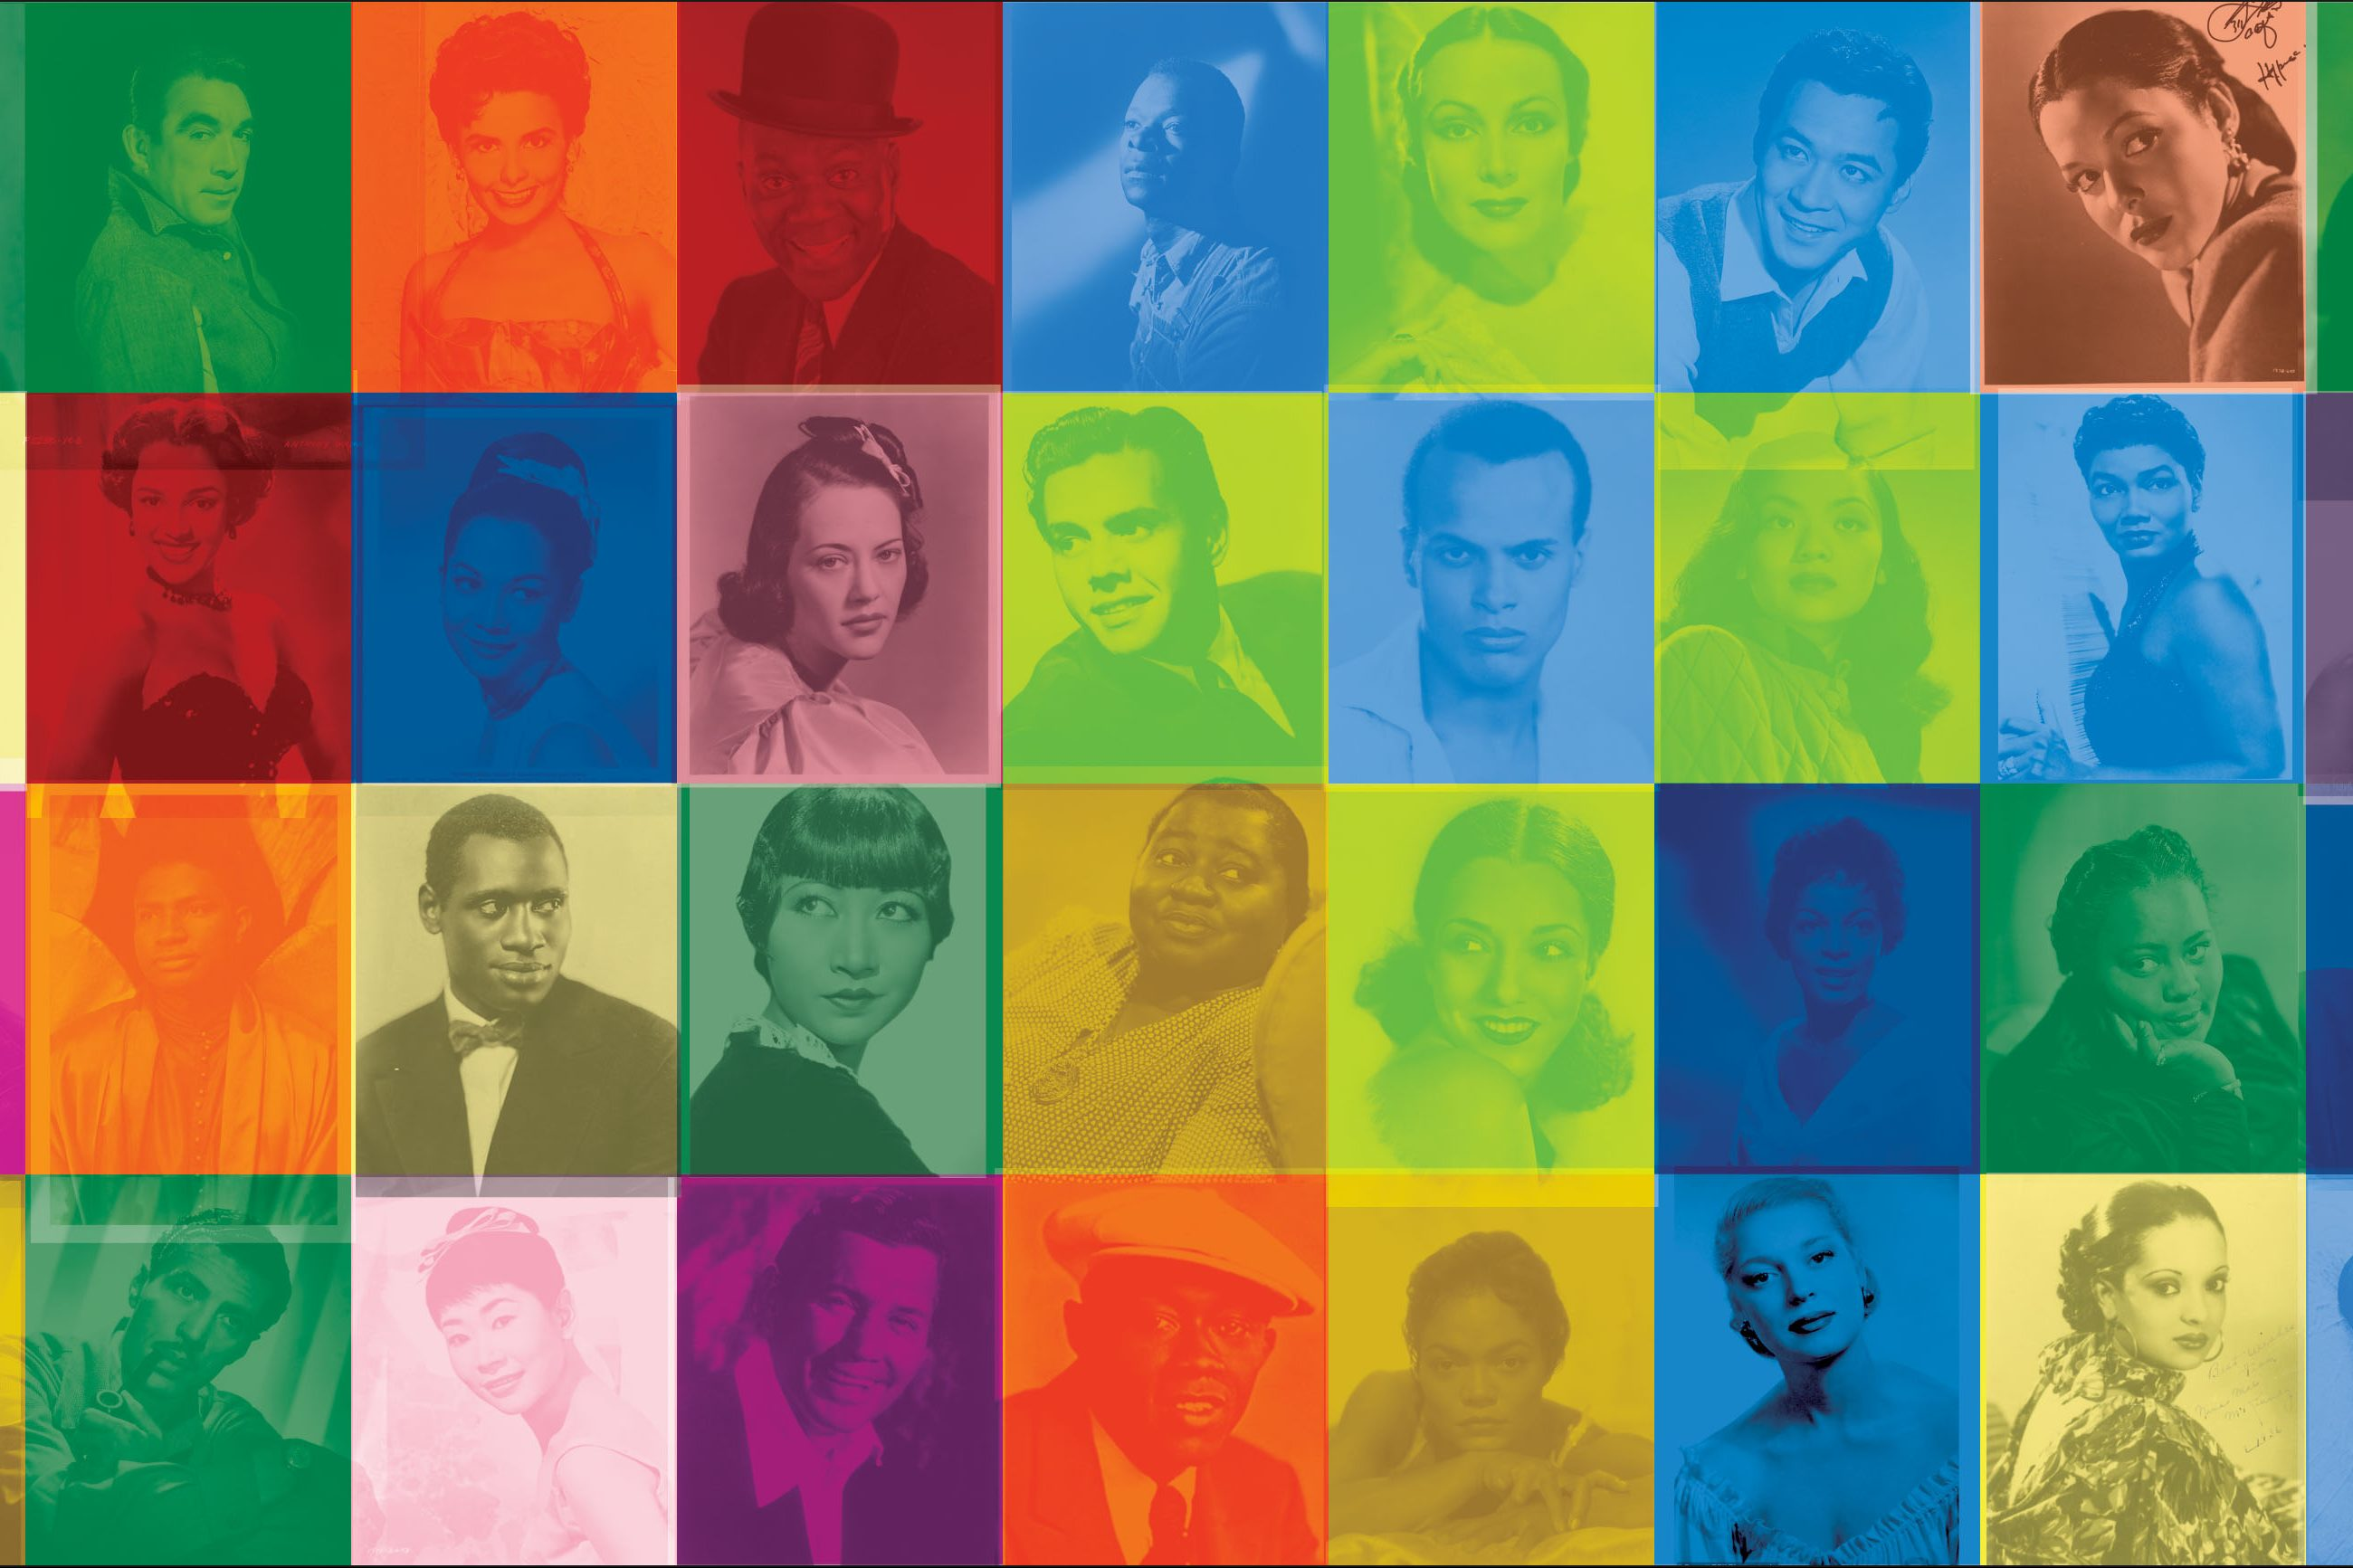 A UV print on retroreflective vinyl contains a grid of headshots of numerous individuals, all of the same size but each using a different, faded neon background color. Subjects are mostly dressed in dresses, tuxedos, suits, etc., with some facing the camera, some shot in profile, some looking into the lens, some not.